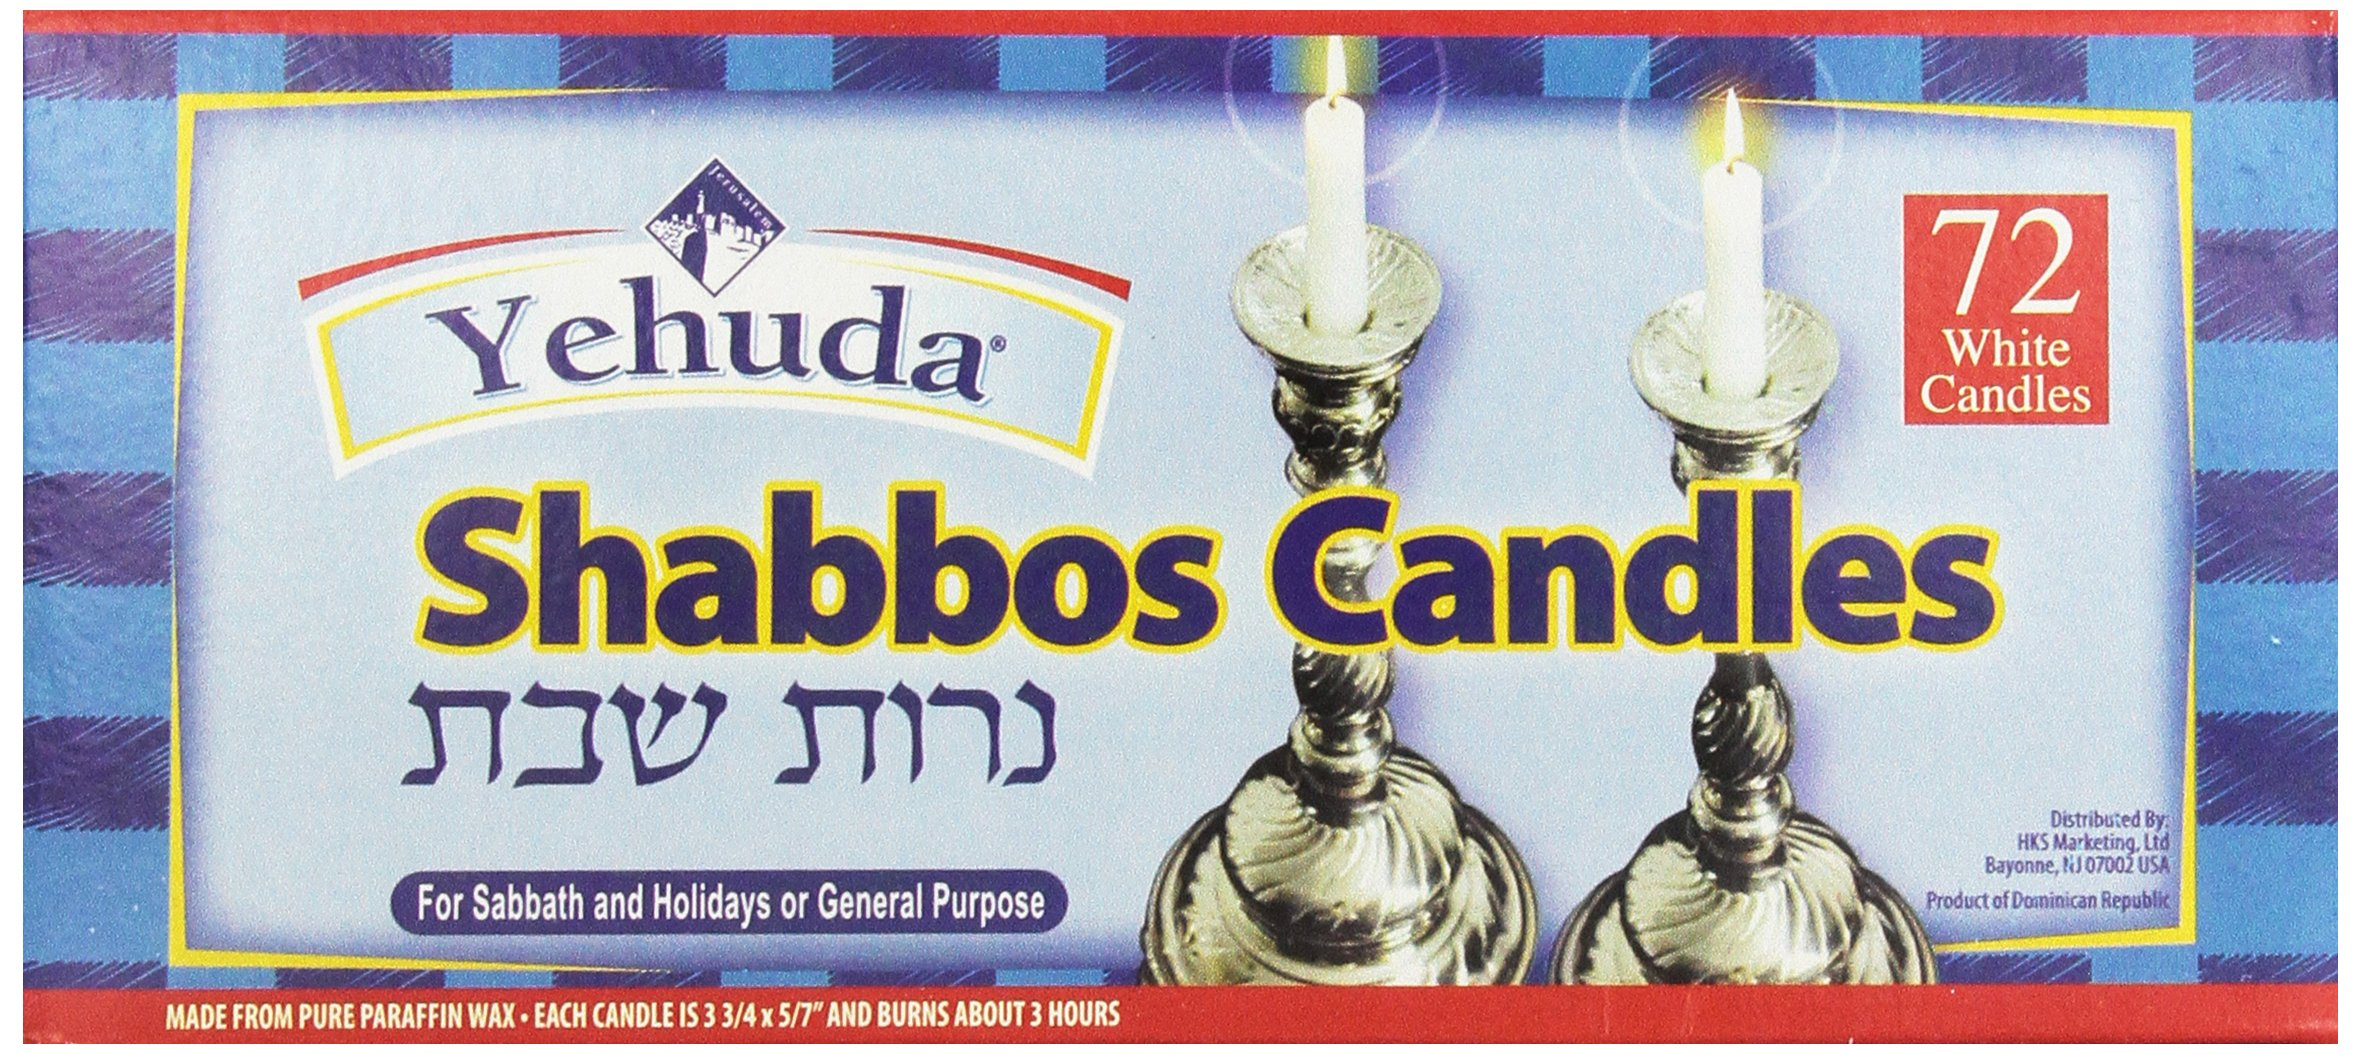 Yehuda 3 Hour White Shabbat Candles, 72 ct, Traditional Shabbos Candles